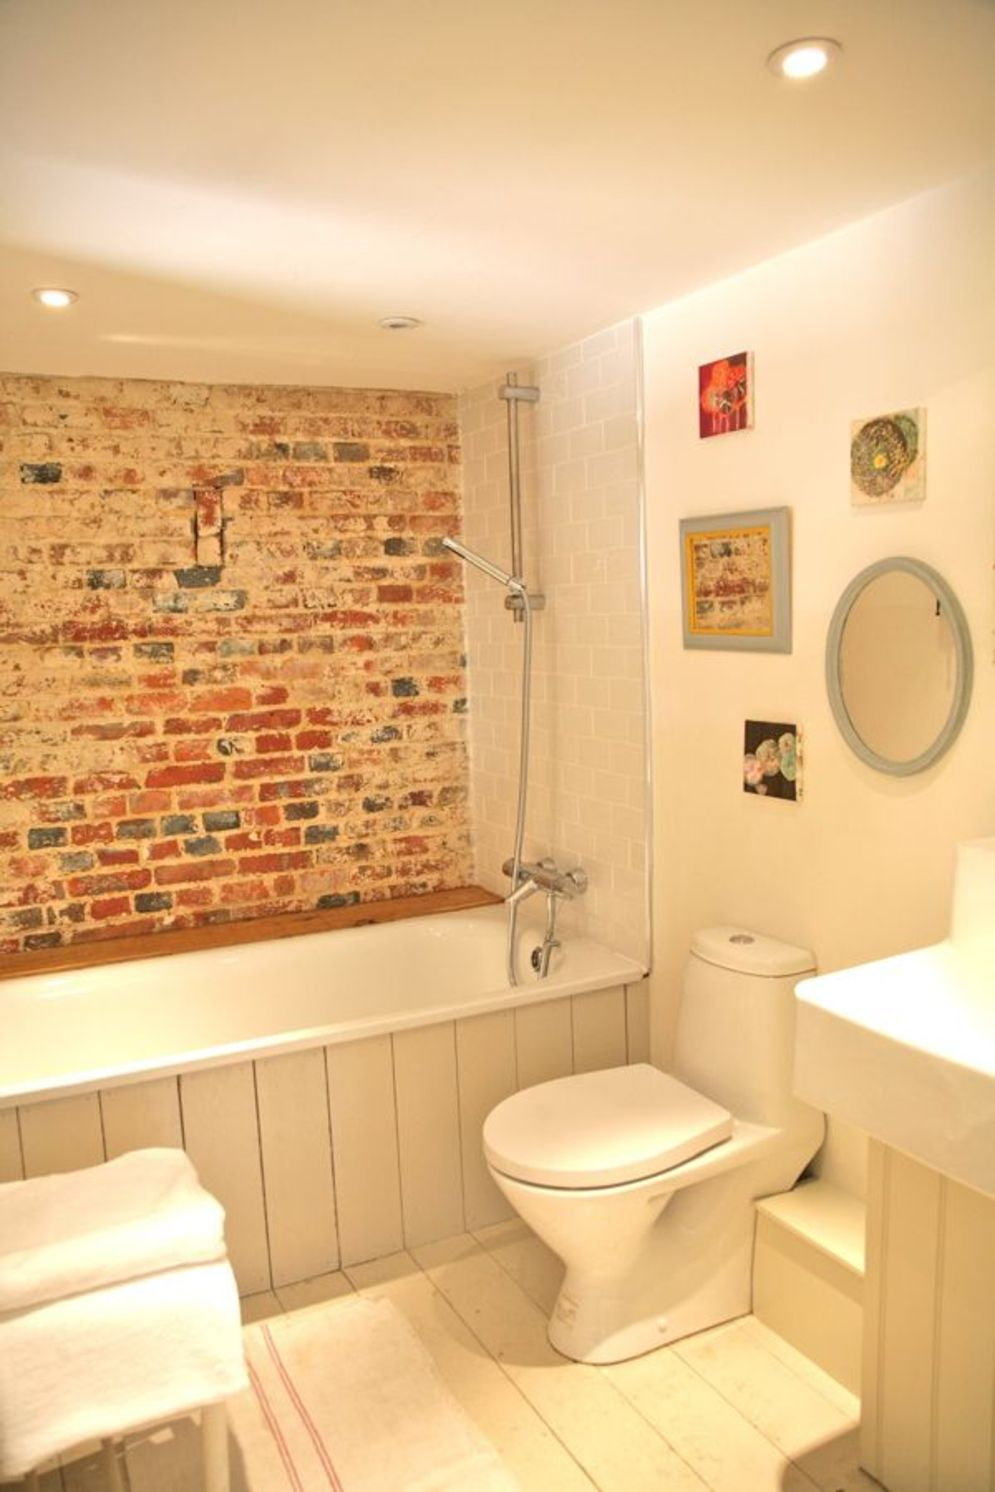 Cozy bathroom update adapting brick wall accents showing charm and friendly finish Image 14